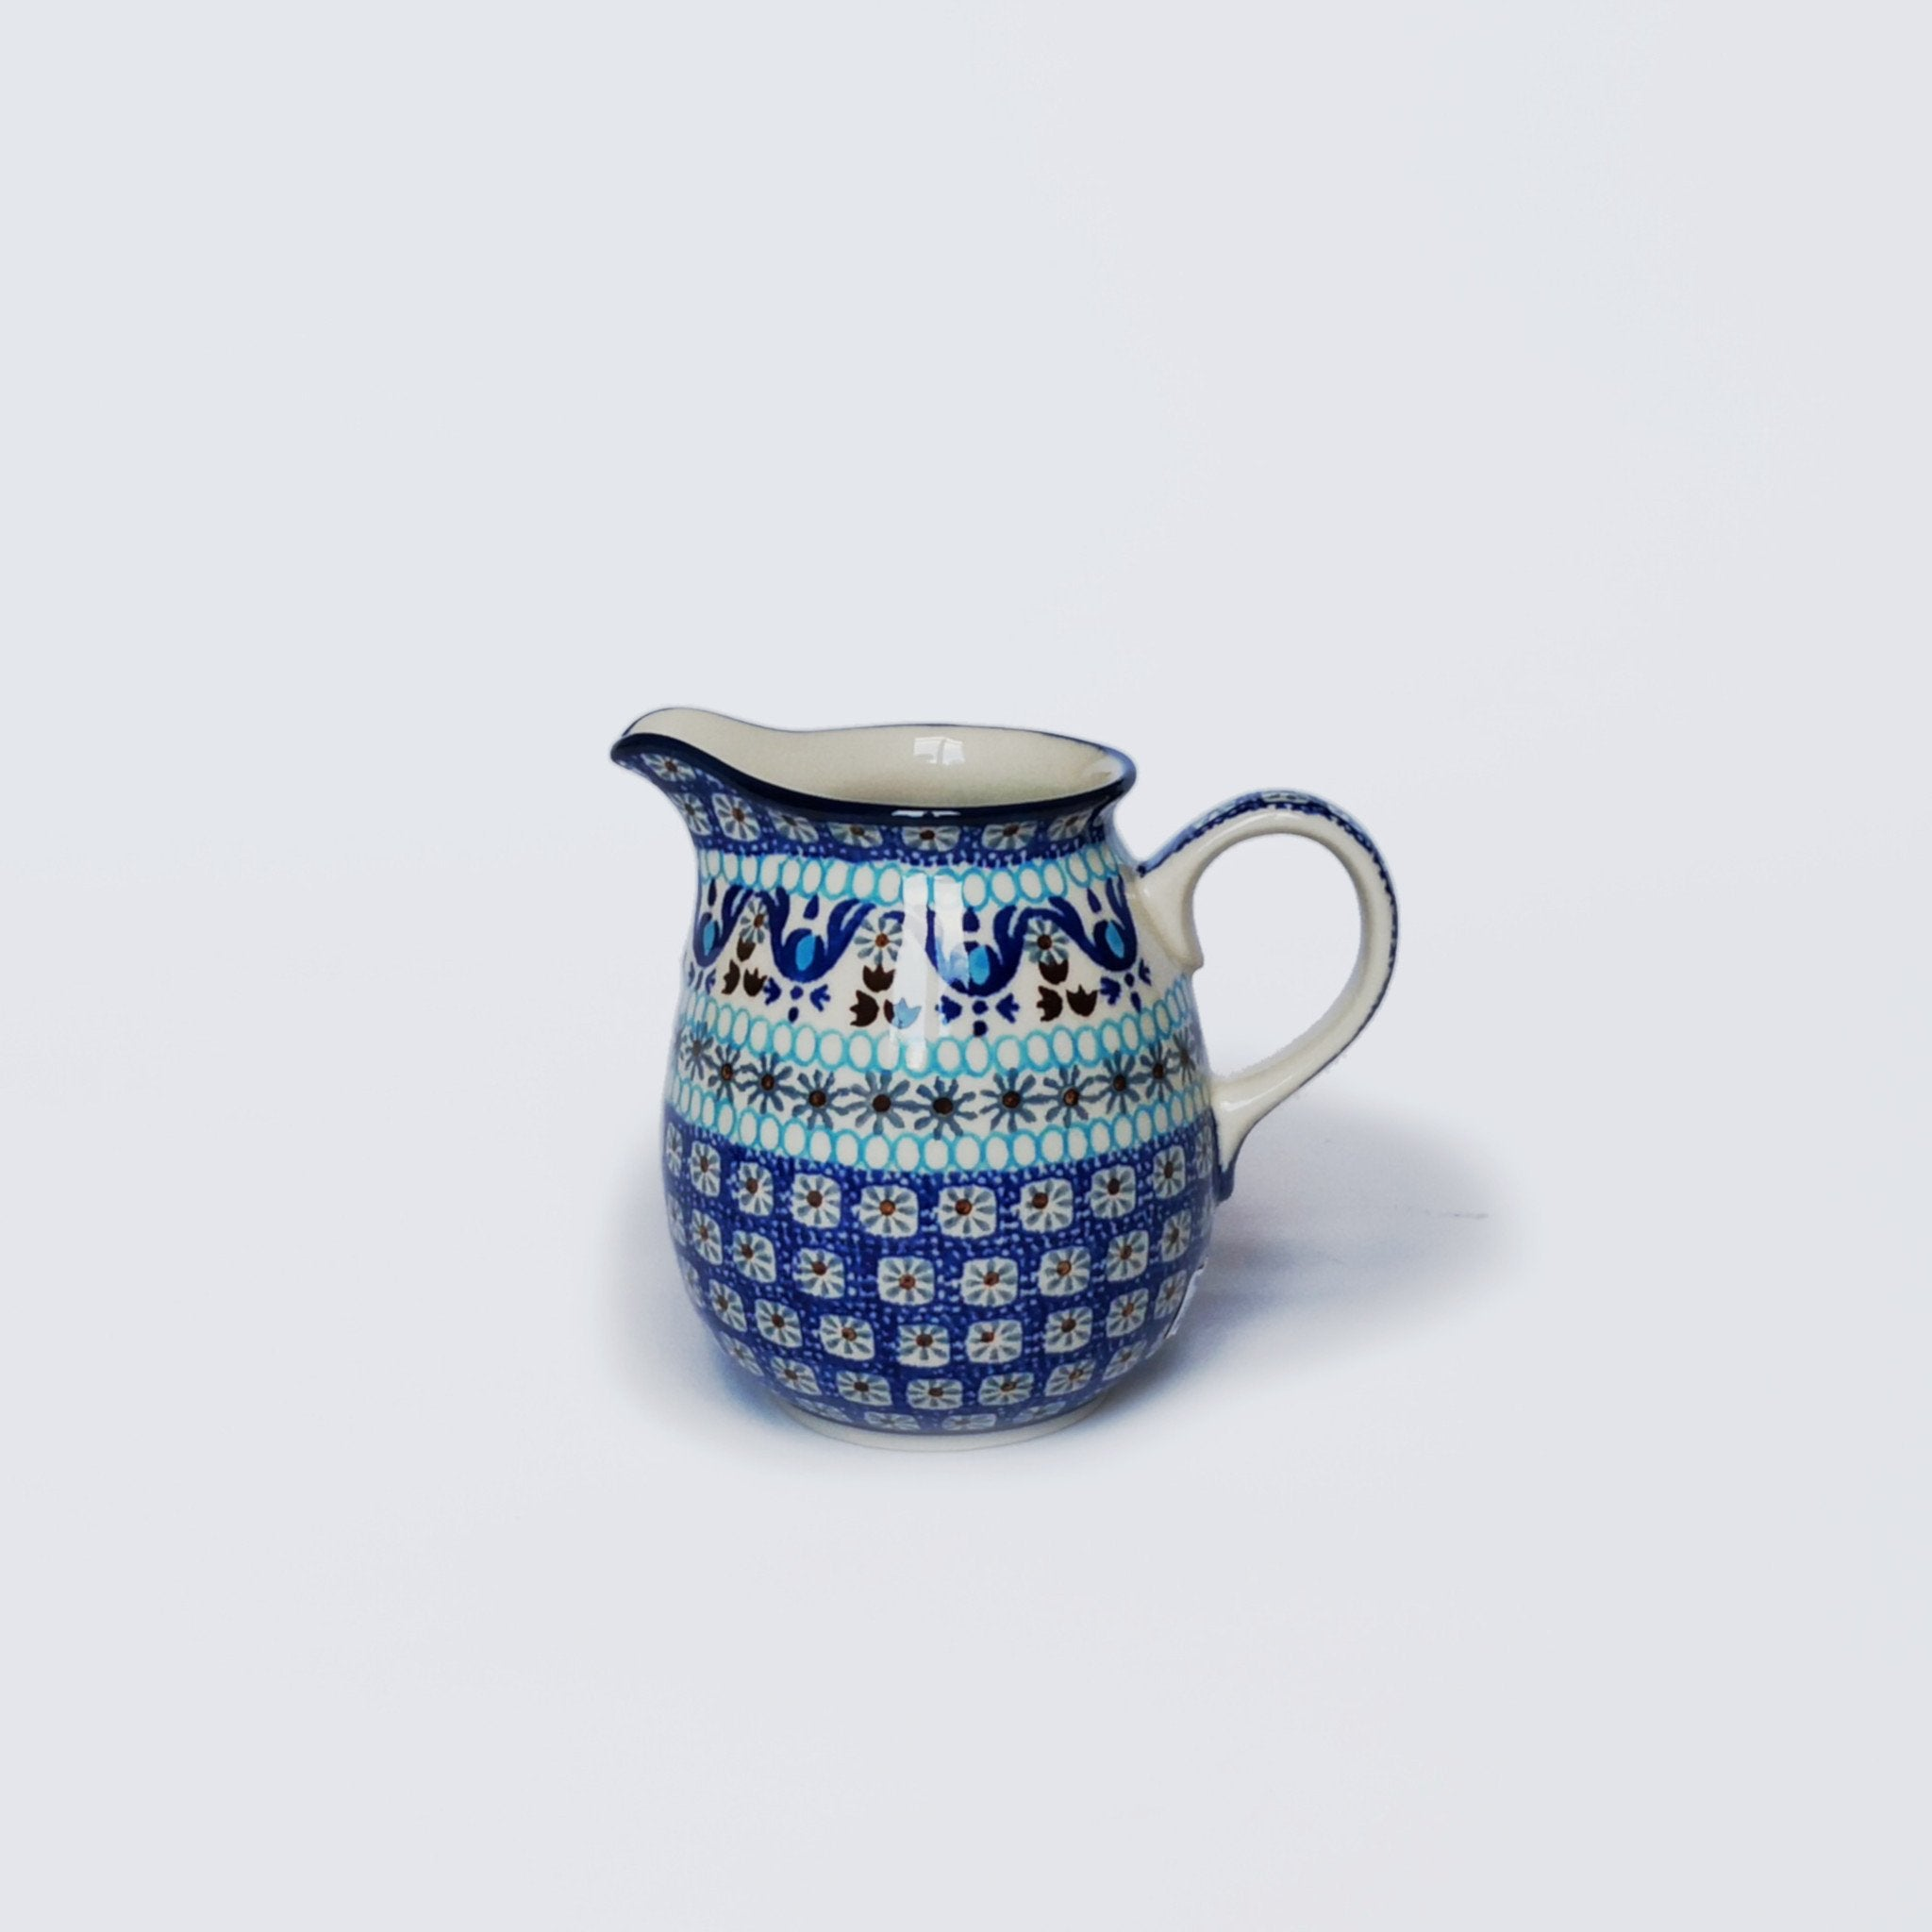 500ml Polish Pottery Milk Jug with colourful traditional handprinted design